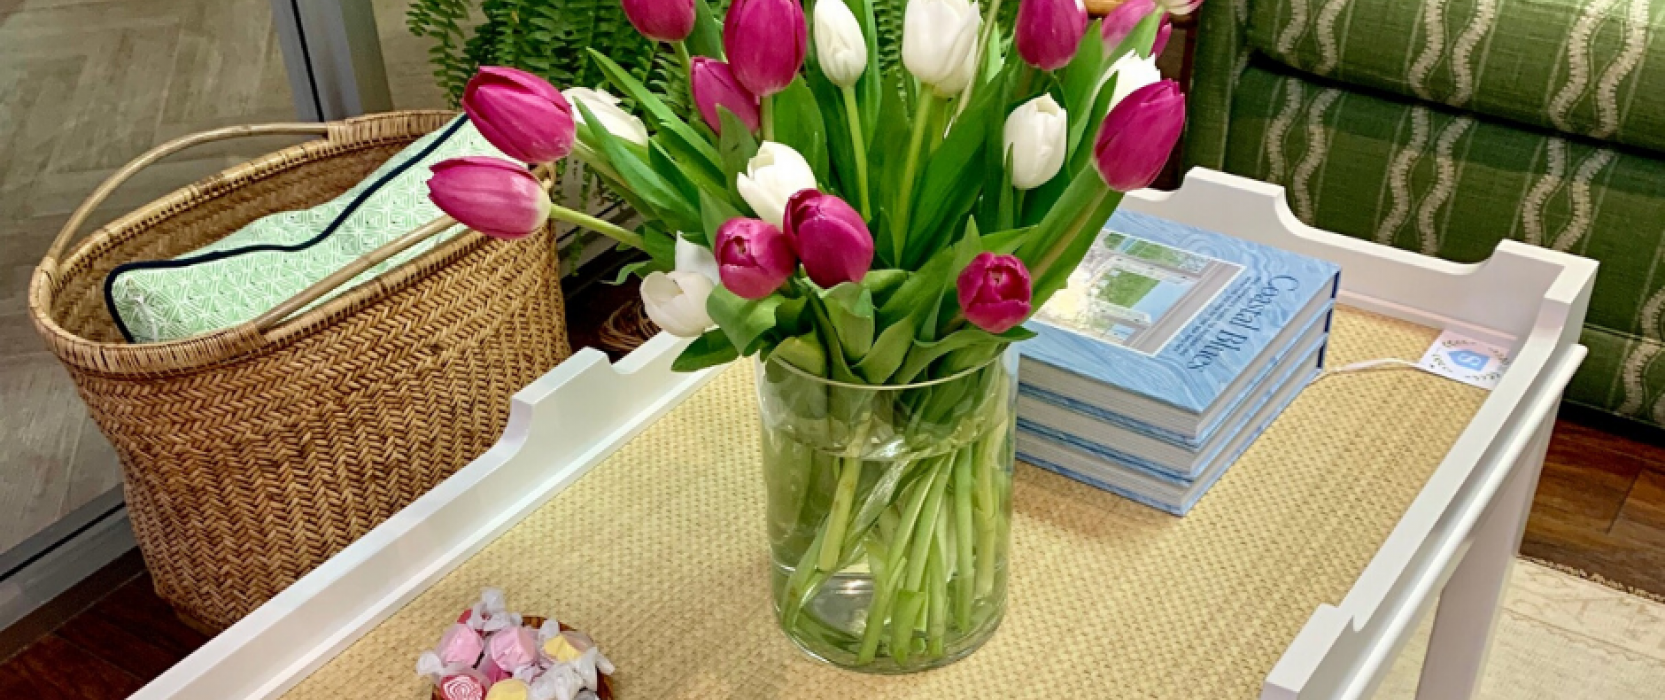 Interior Springtime decor from Summerland Homes and Gardens